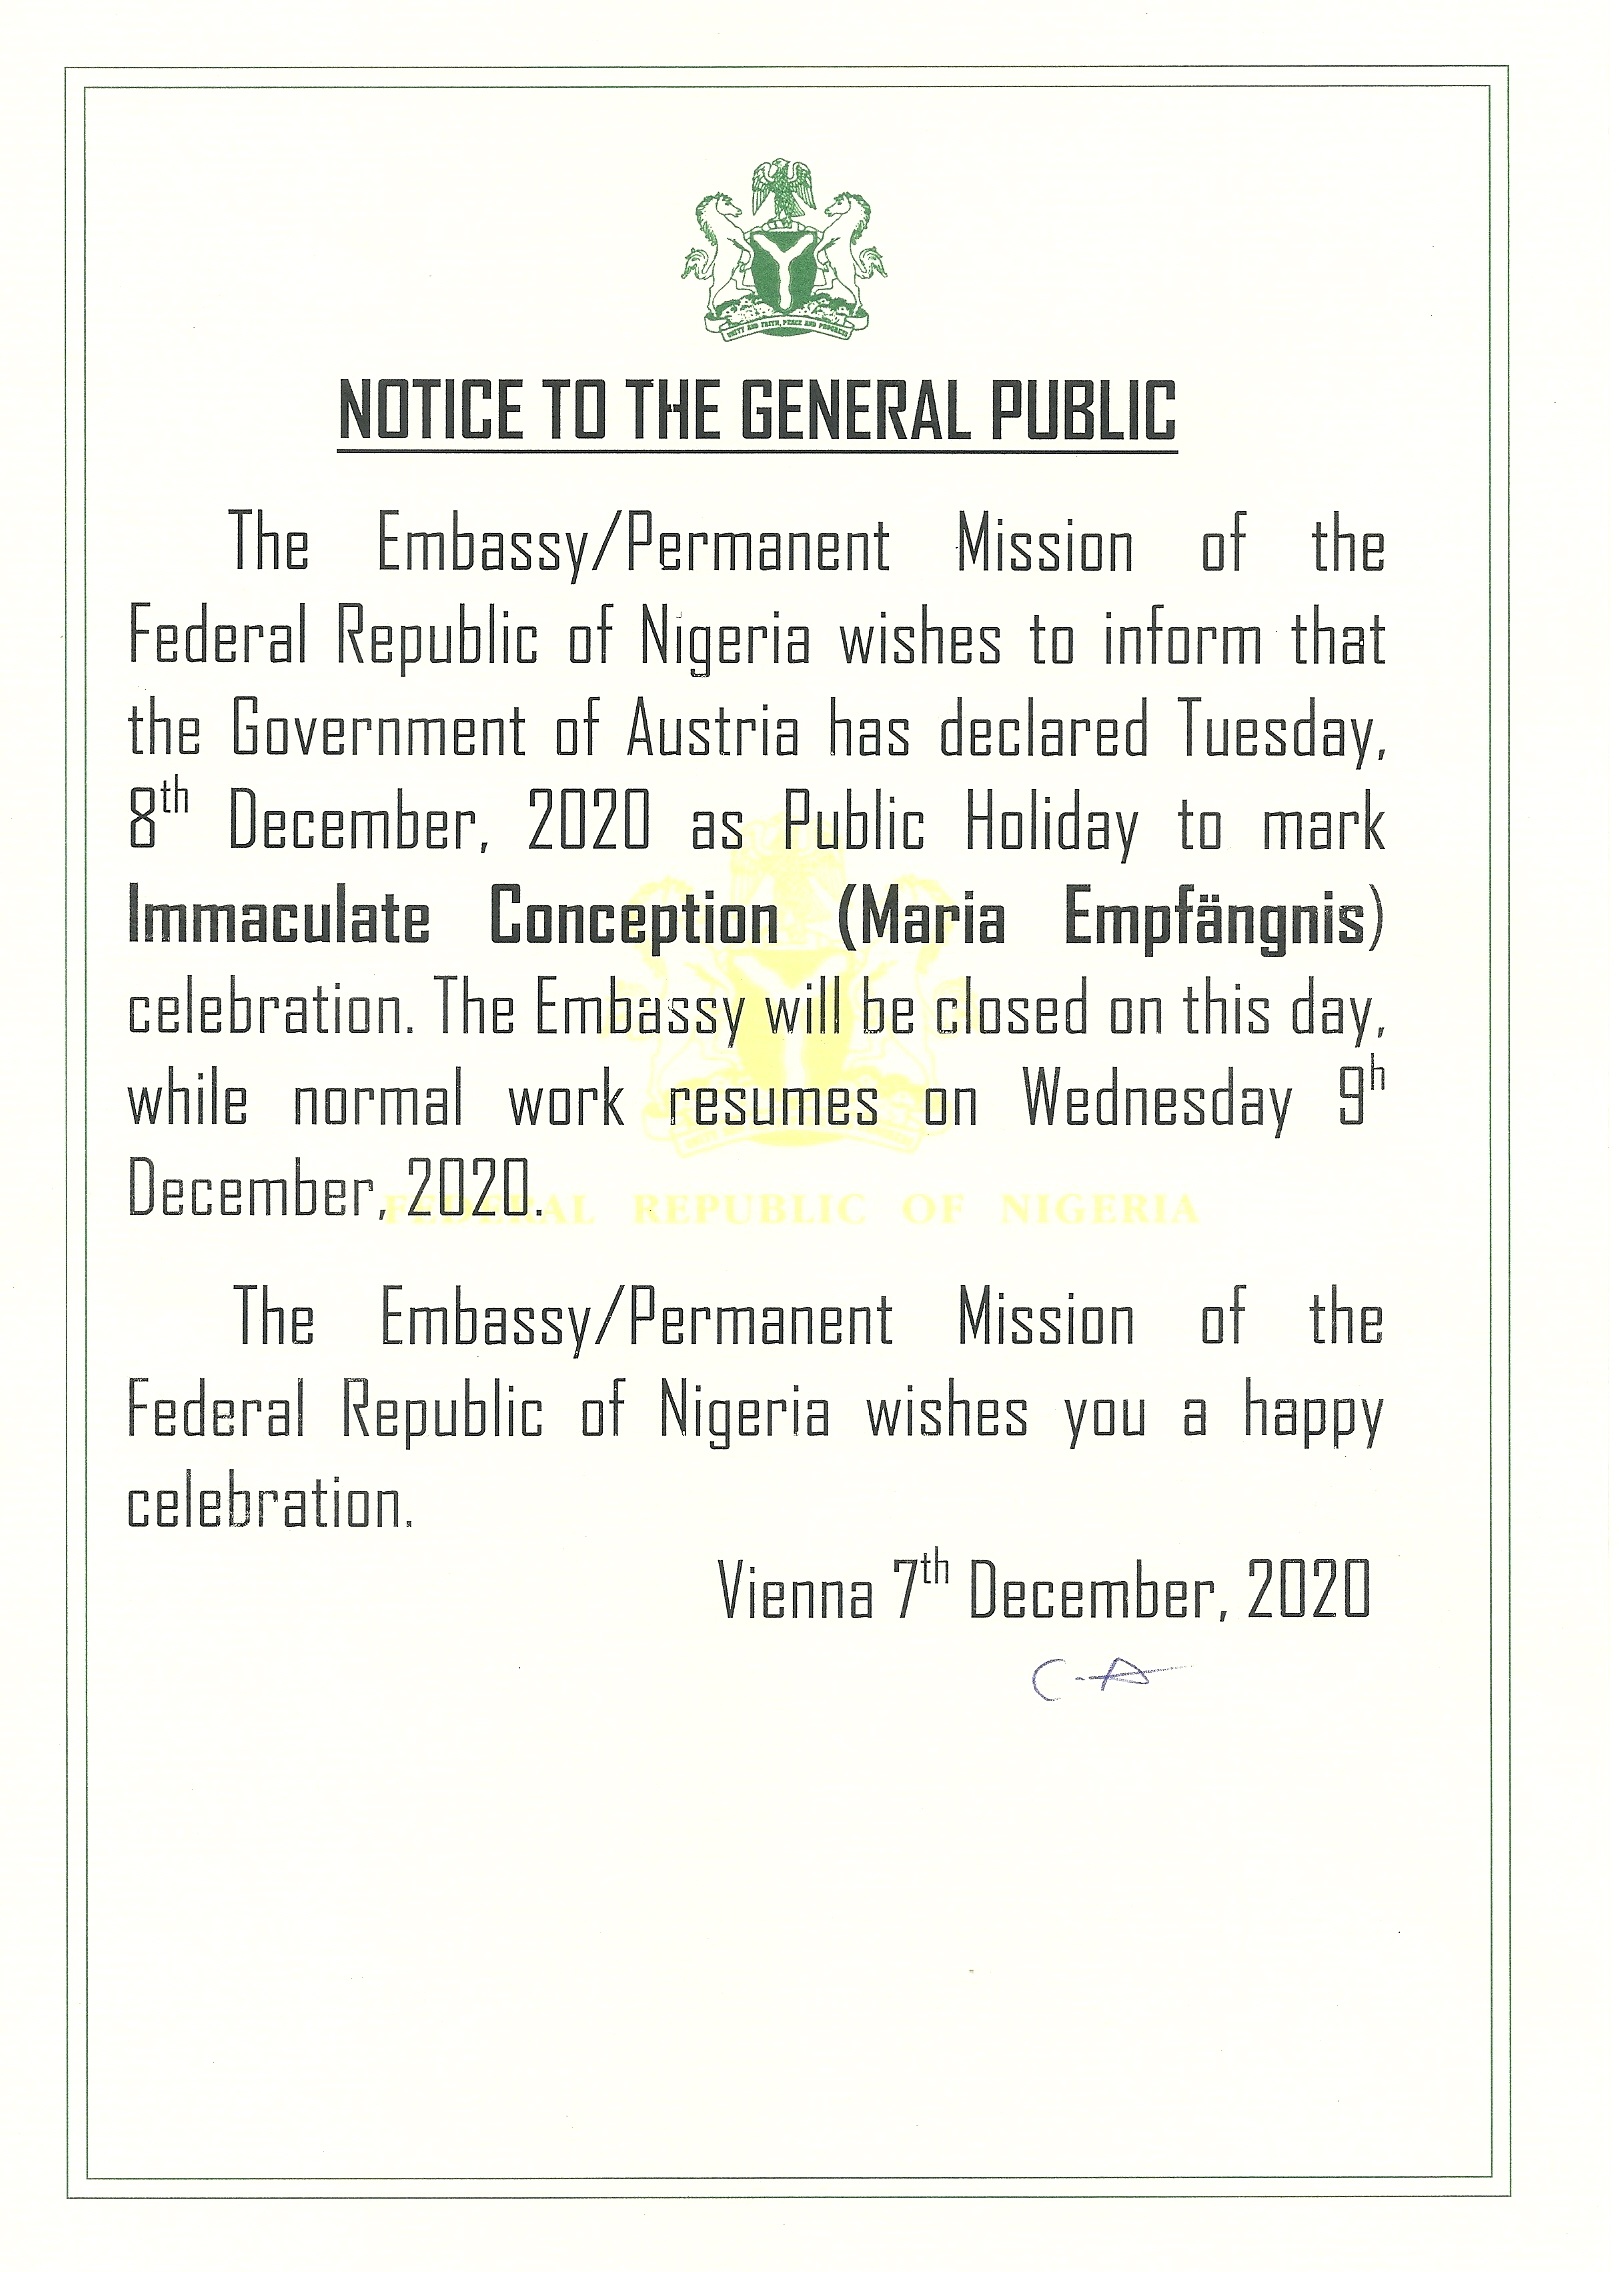 PUBLIC HOLIDAY ANNOUNCEMENT